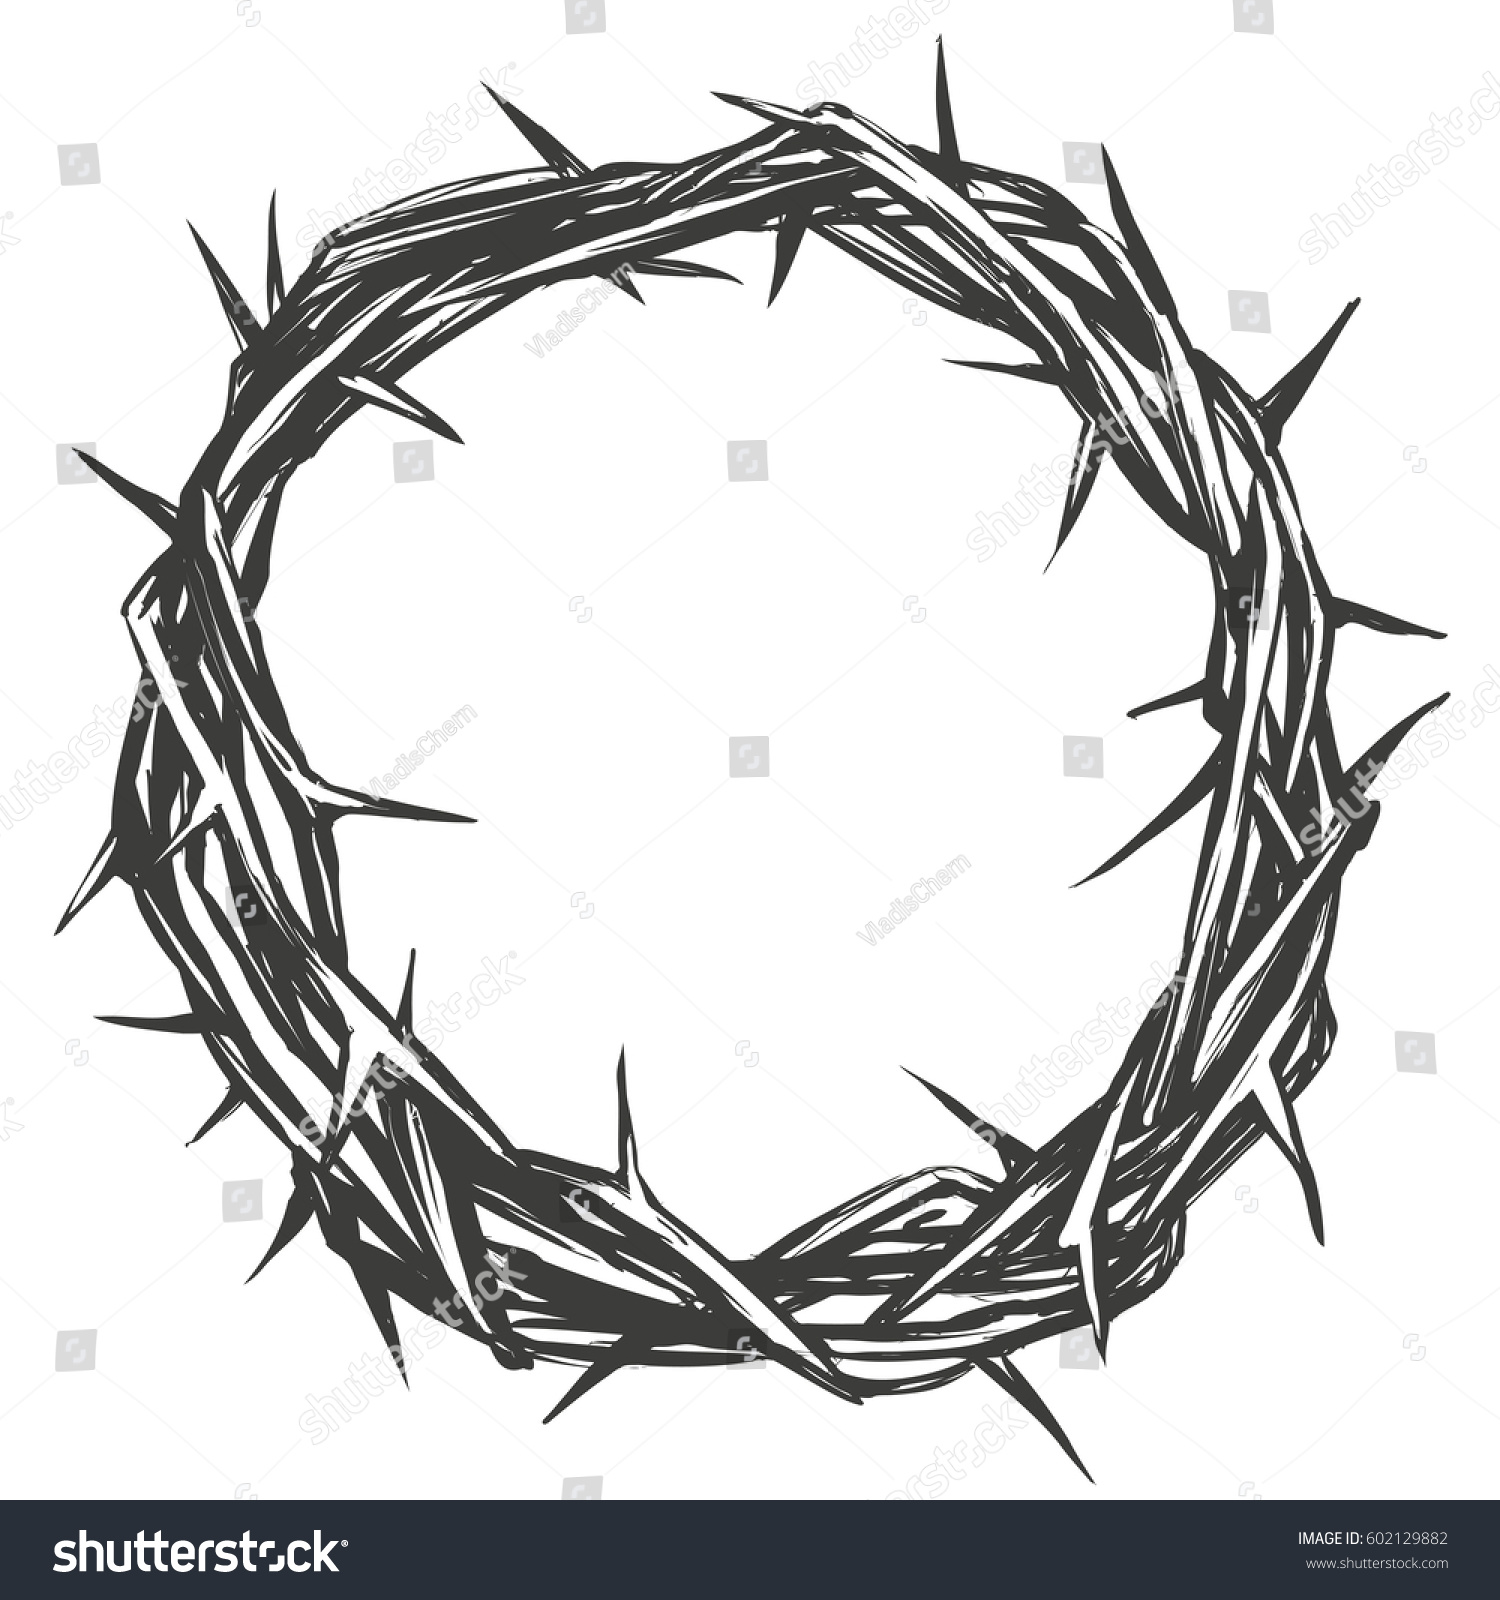 Crown thorns easter religious symbol christianity stock vector crown of thorns easter religious symbol of christianity hand drawn vector illustration sketch logo buycottarizona Gallery